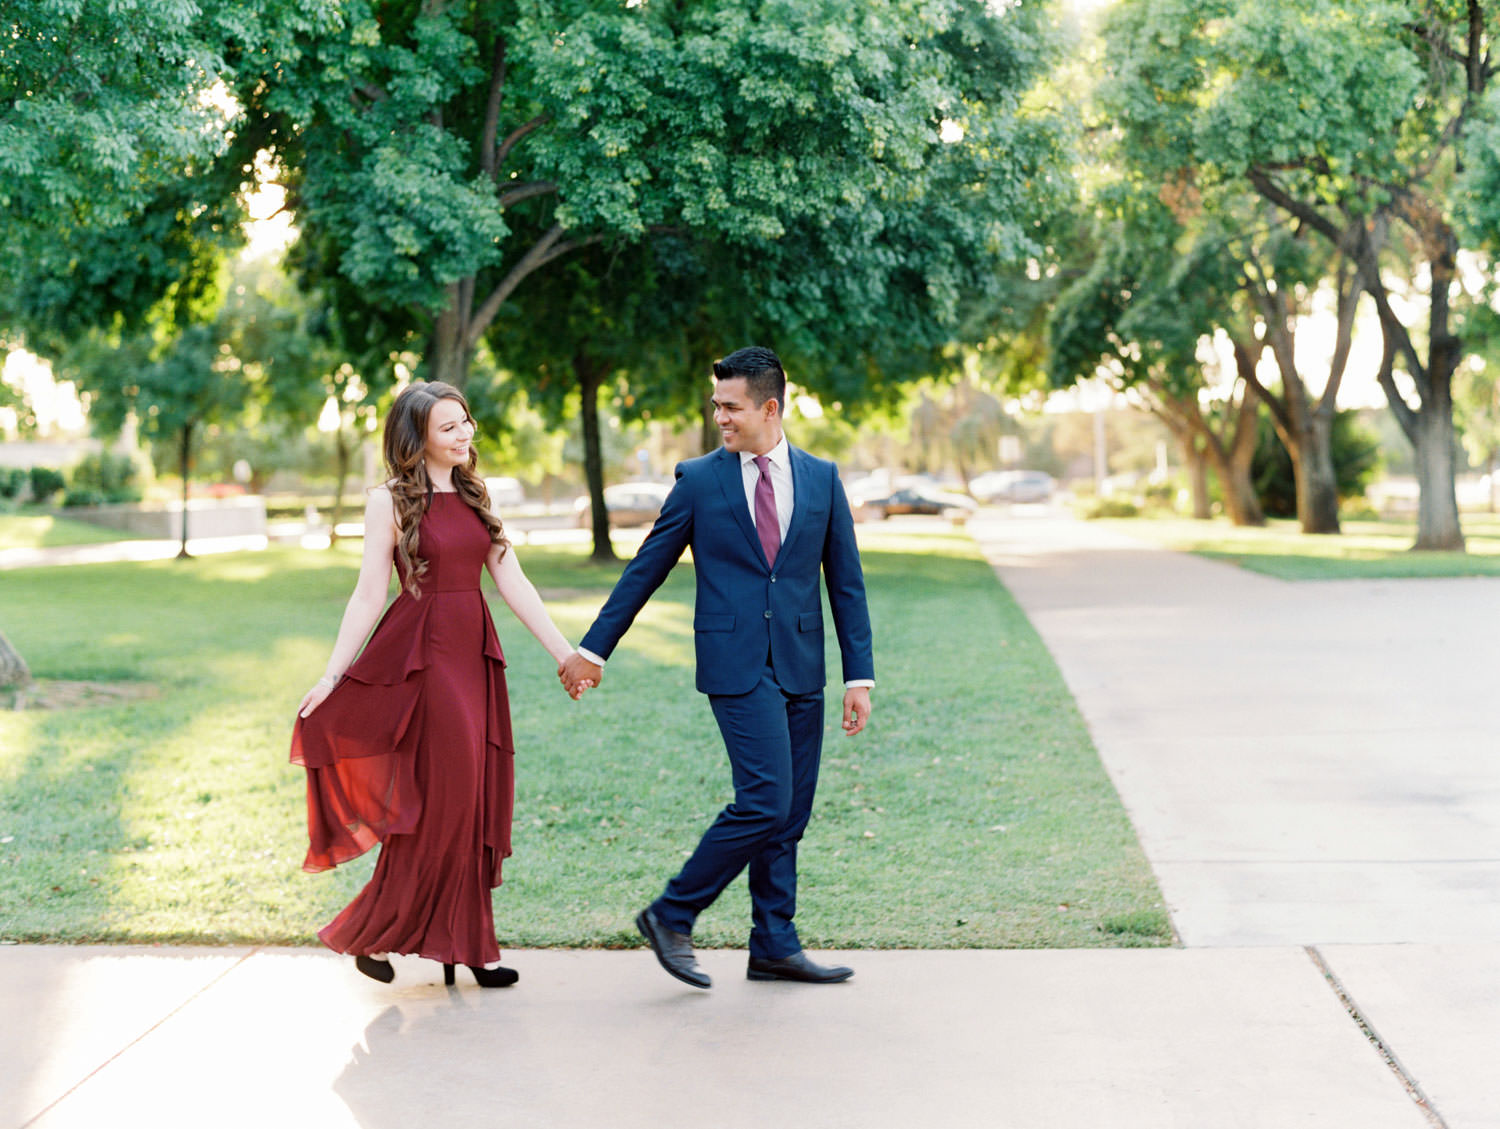 UC Riverside Engagement photos. Bride in long berry marsala dress and groom in navy suit. Film photographer Cavin Elizabeth Photography.